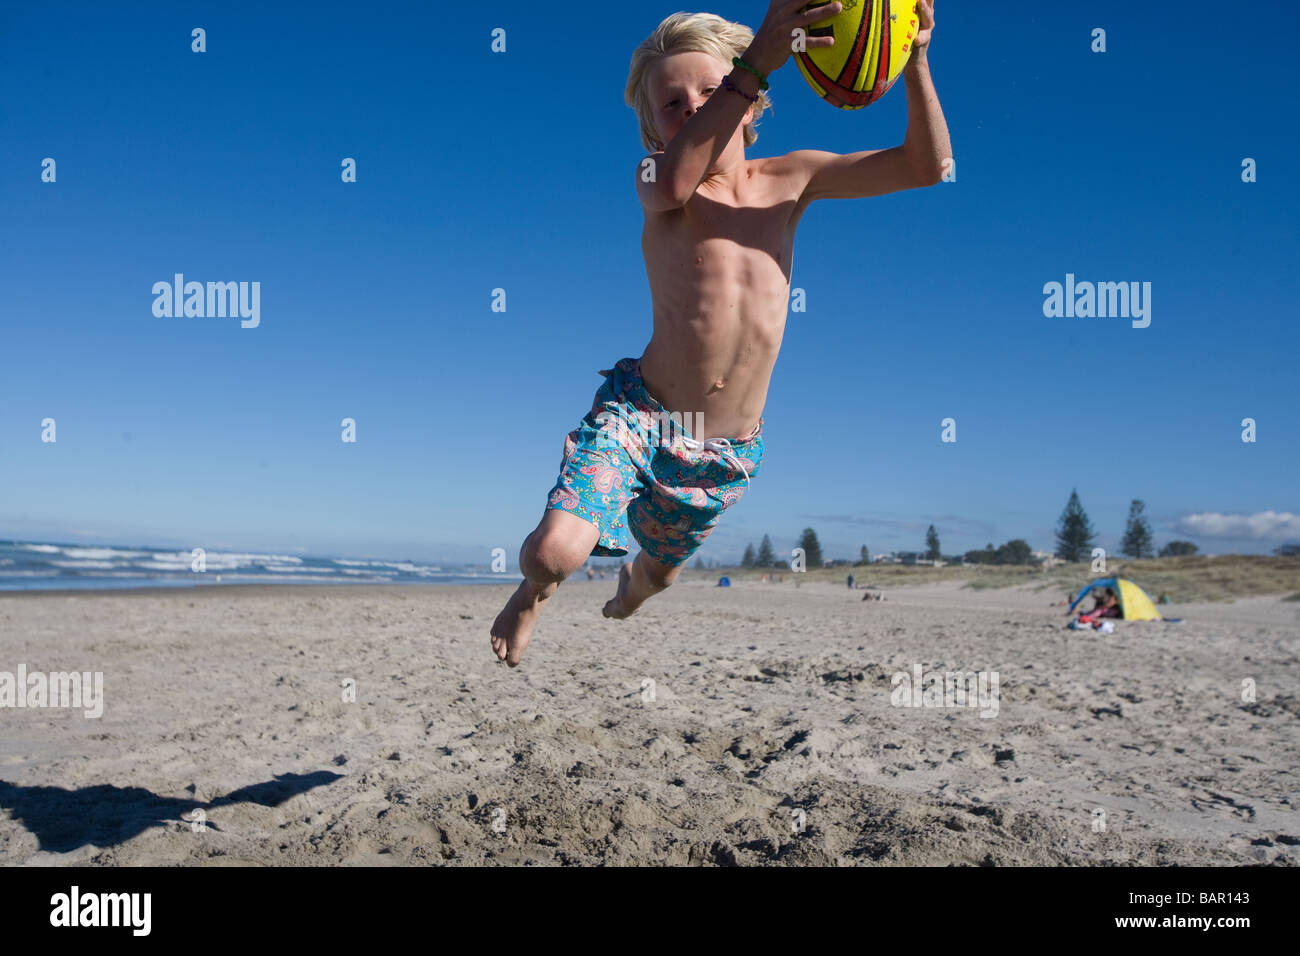 Children Rugby New Zealand High Resolution Stock Photography And Images Alamy